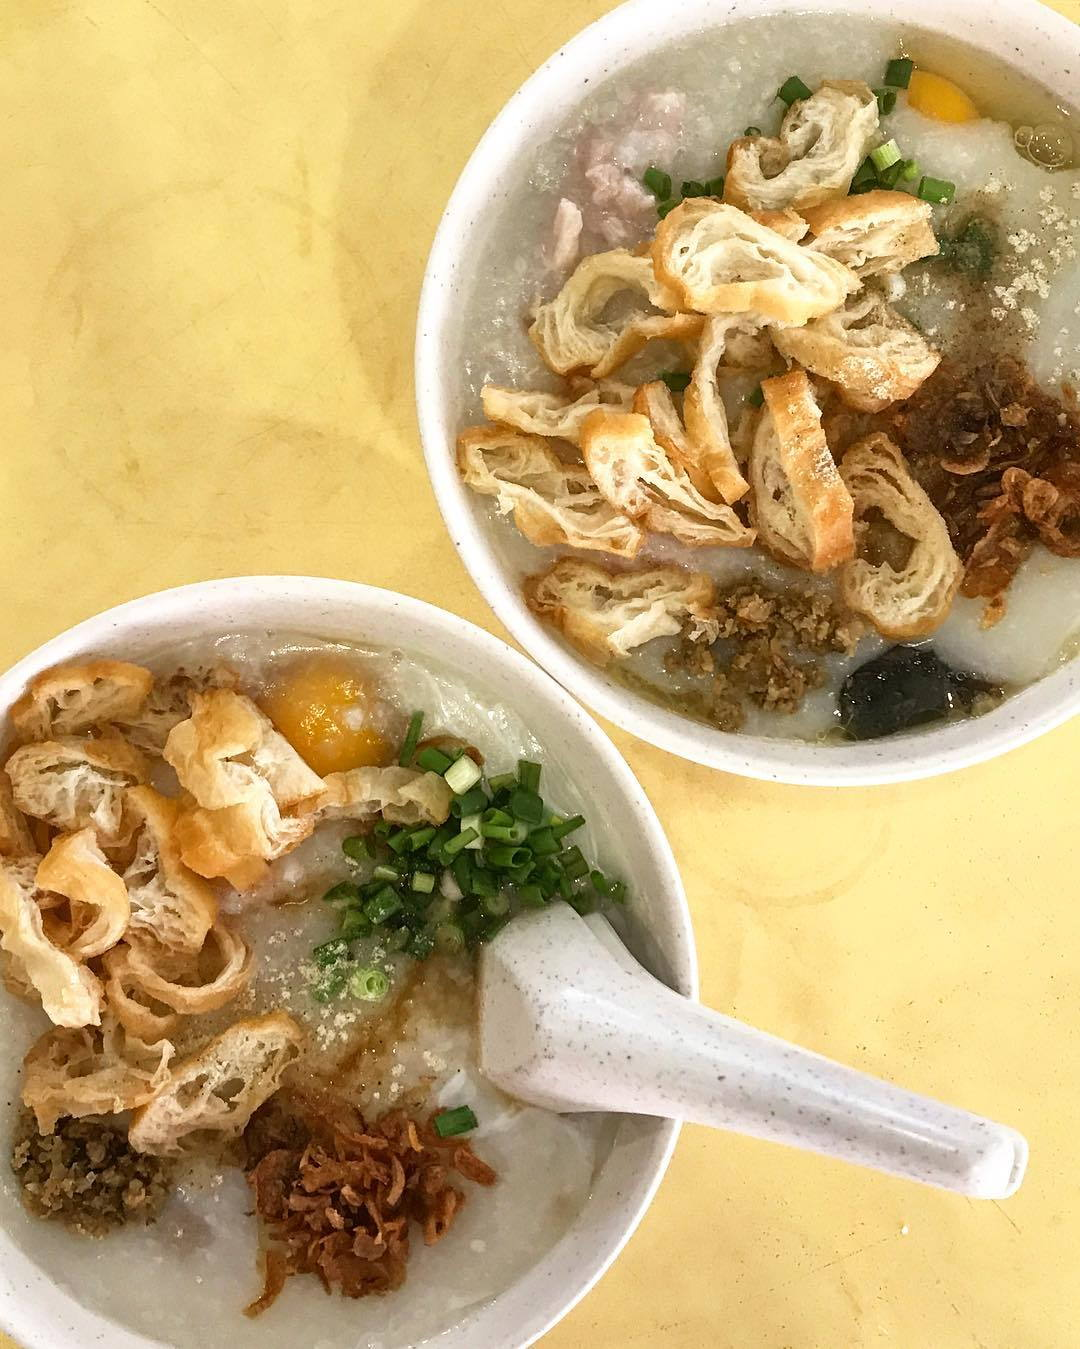 Telok Blangah Crescent Food Centre - Xiang Ji Porridge